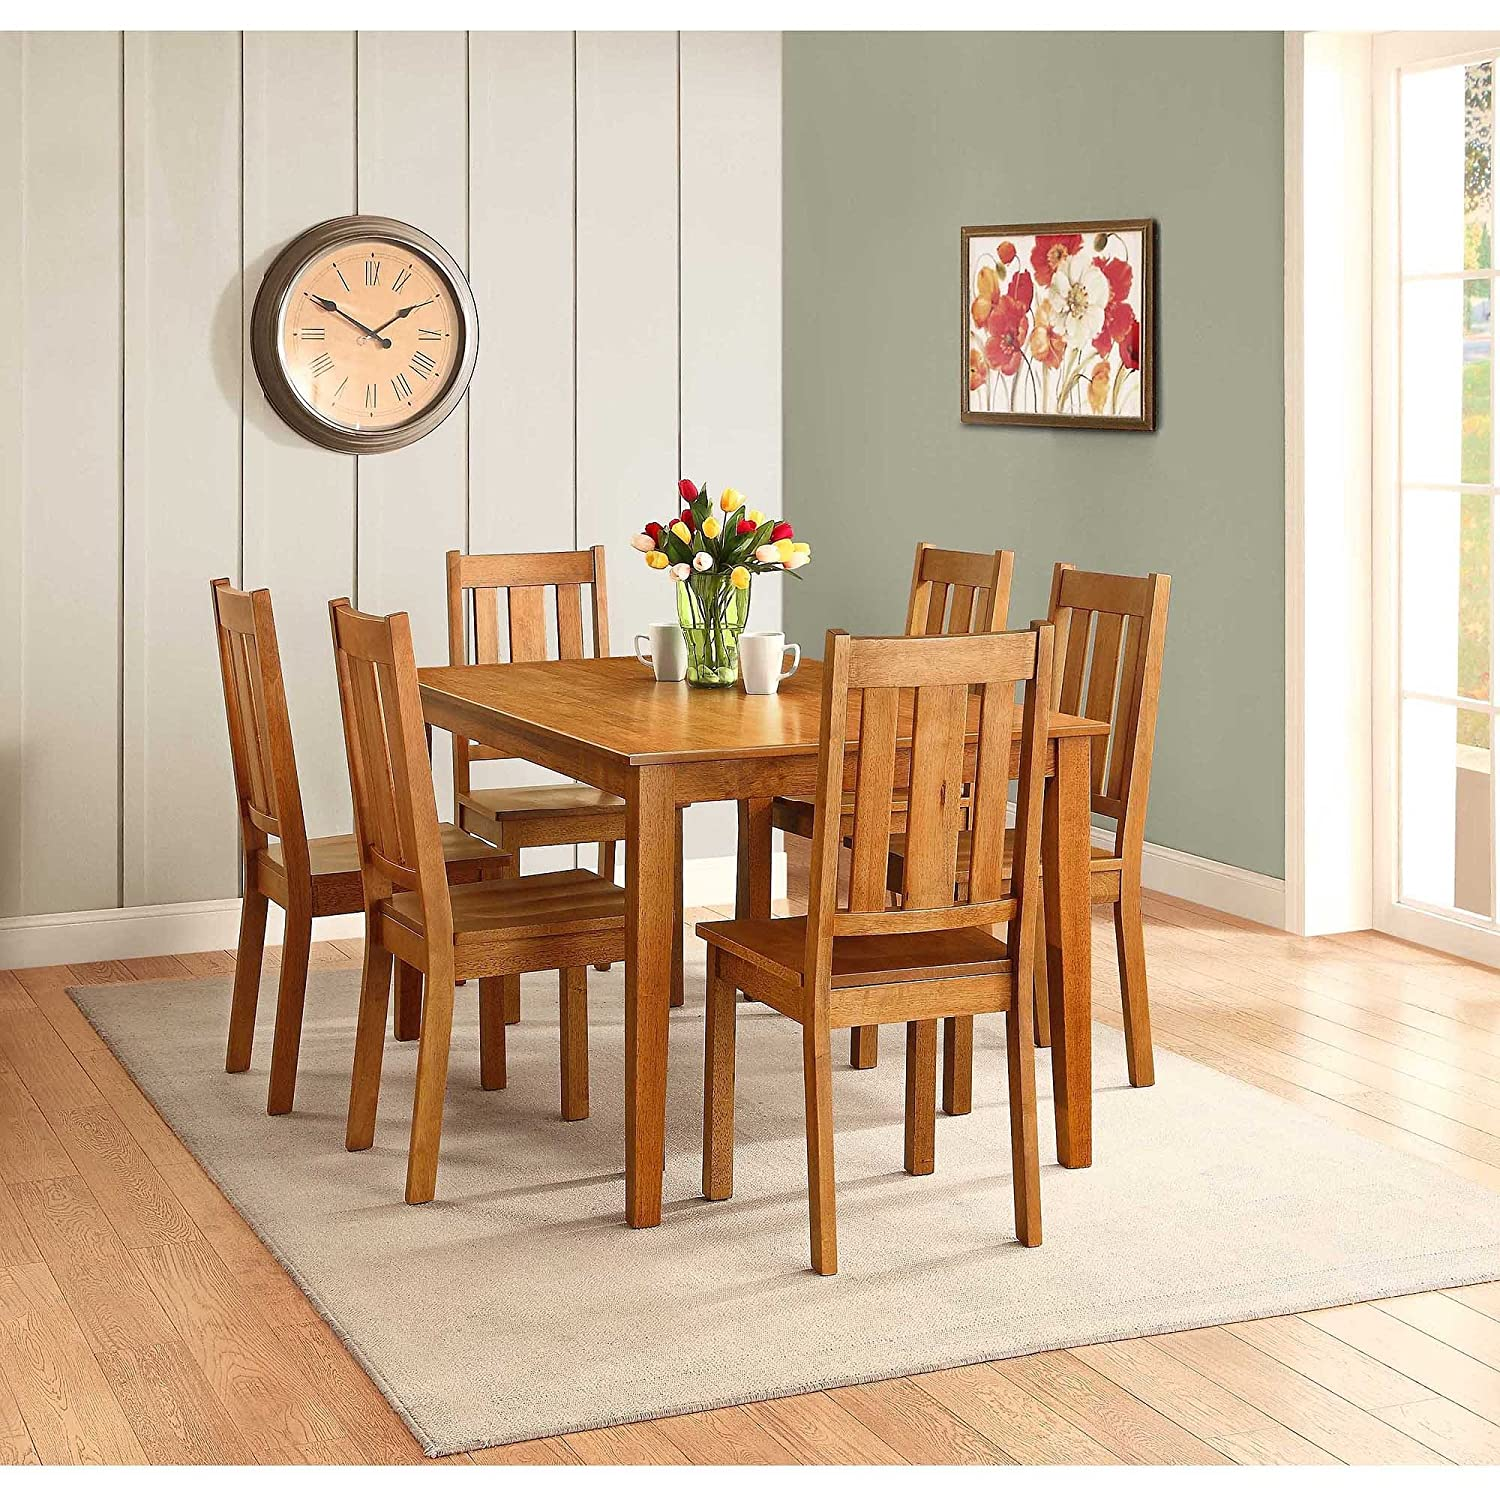 KITCHEN TABLE and CHAIRS 7 PIECE Wood DINNING Set for 6 Honey Finish